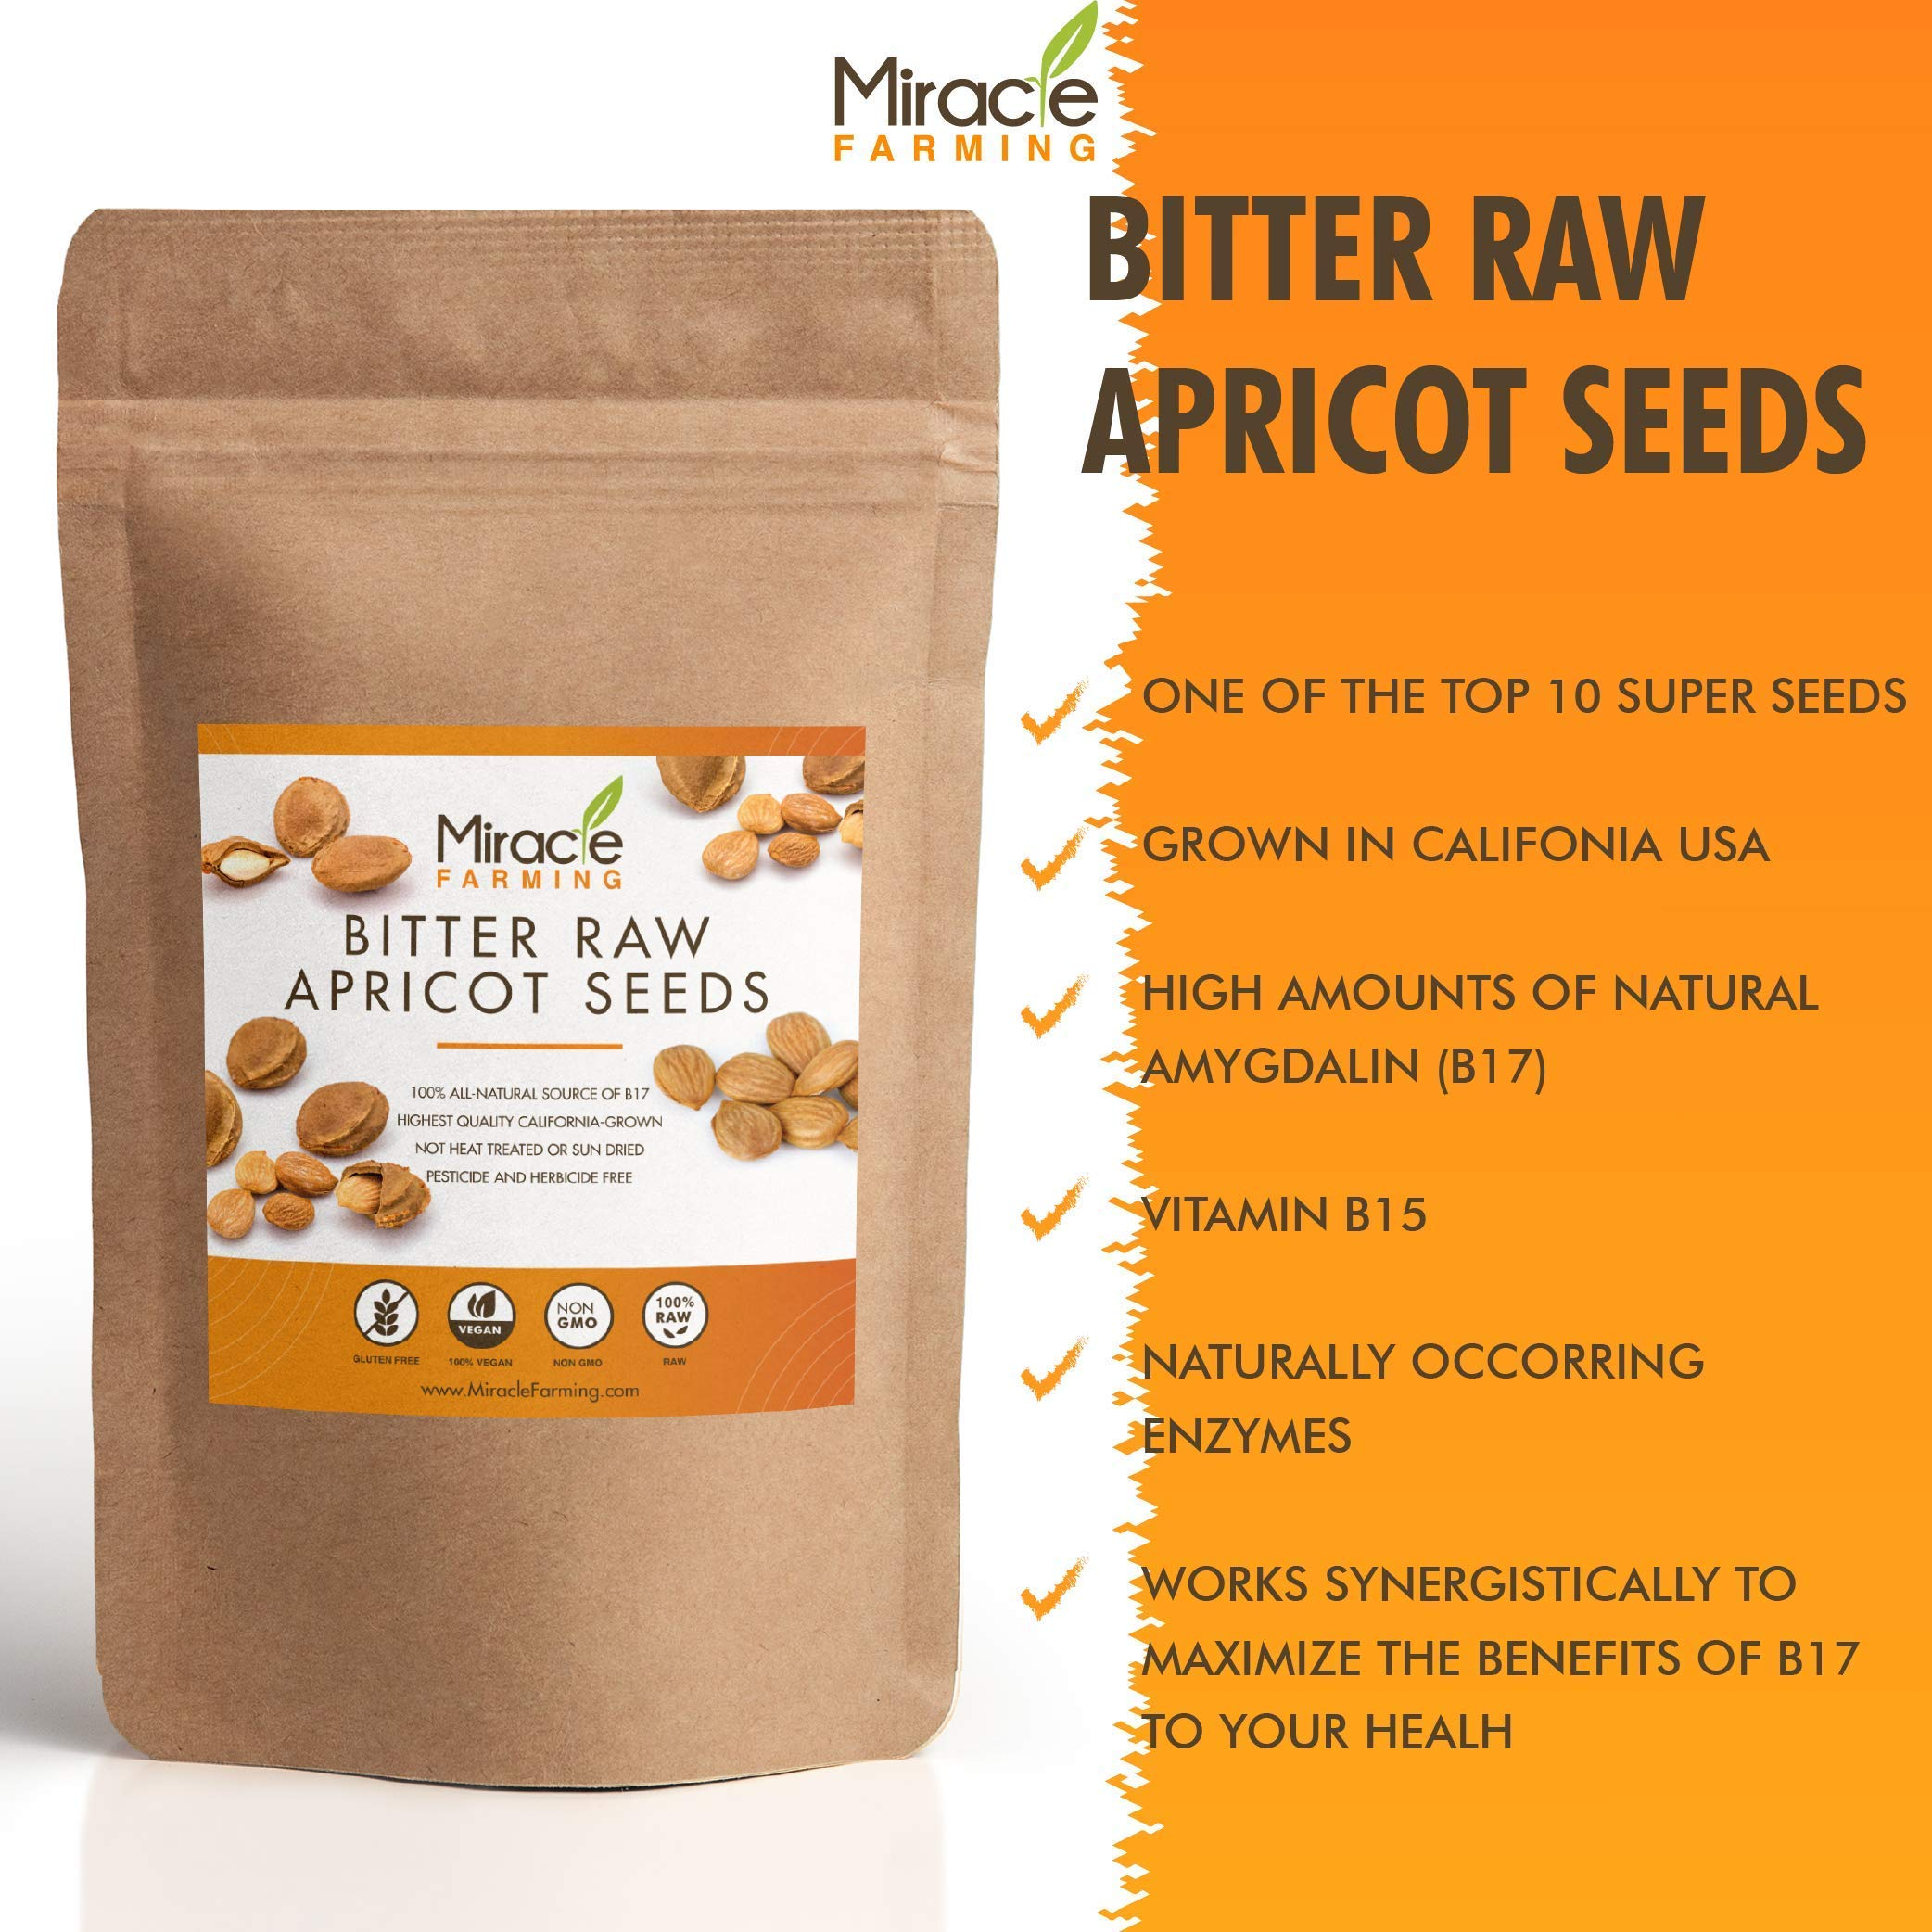 Bitter Apricot Seeds / Kernels (1lb) 16oz, California USA Grown, Pesticide and Herbicide-Free, Non GMO, Vegan, Raw & Large, The Best Natural Source of Vitamin B17, In an Easy Resealable Pouch by Miracle Farming (Image #1)